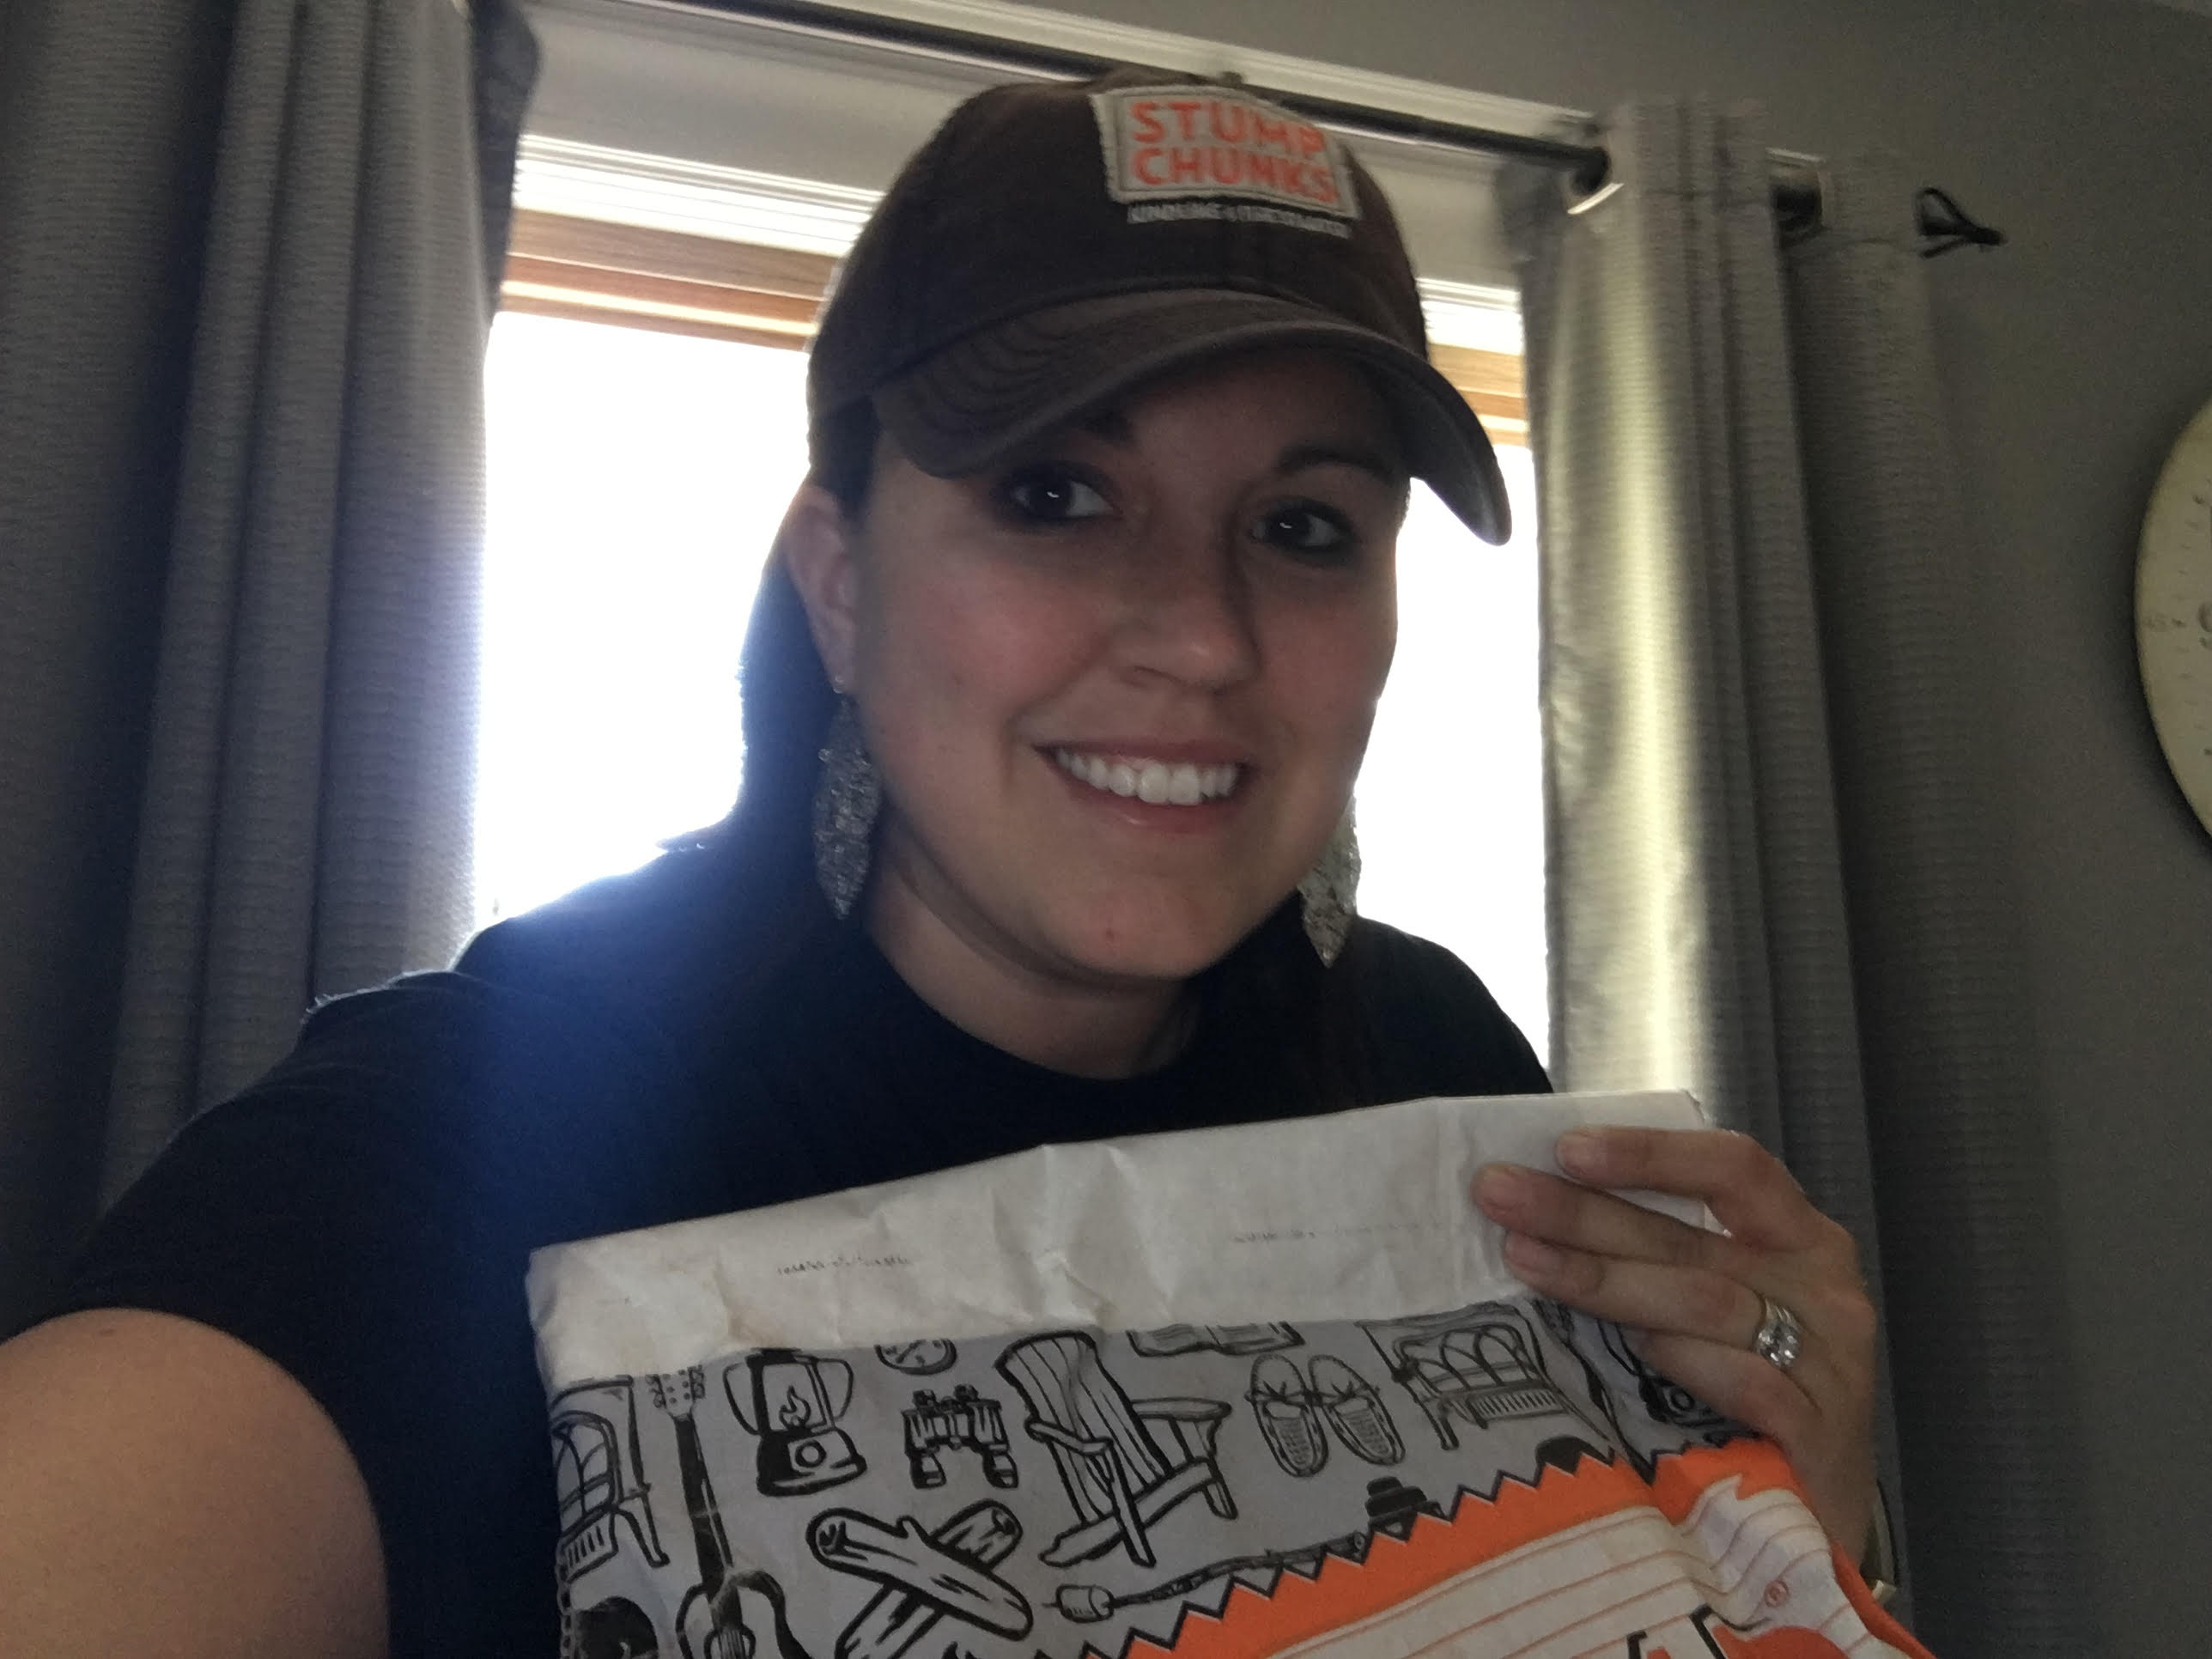 Stump Chunks – July Large Bag and Hat Contest Winner